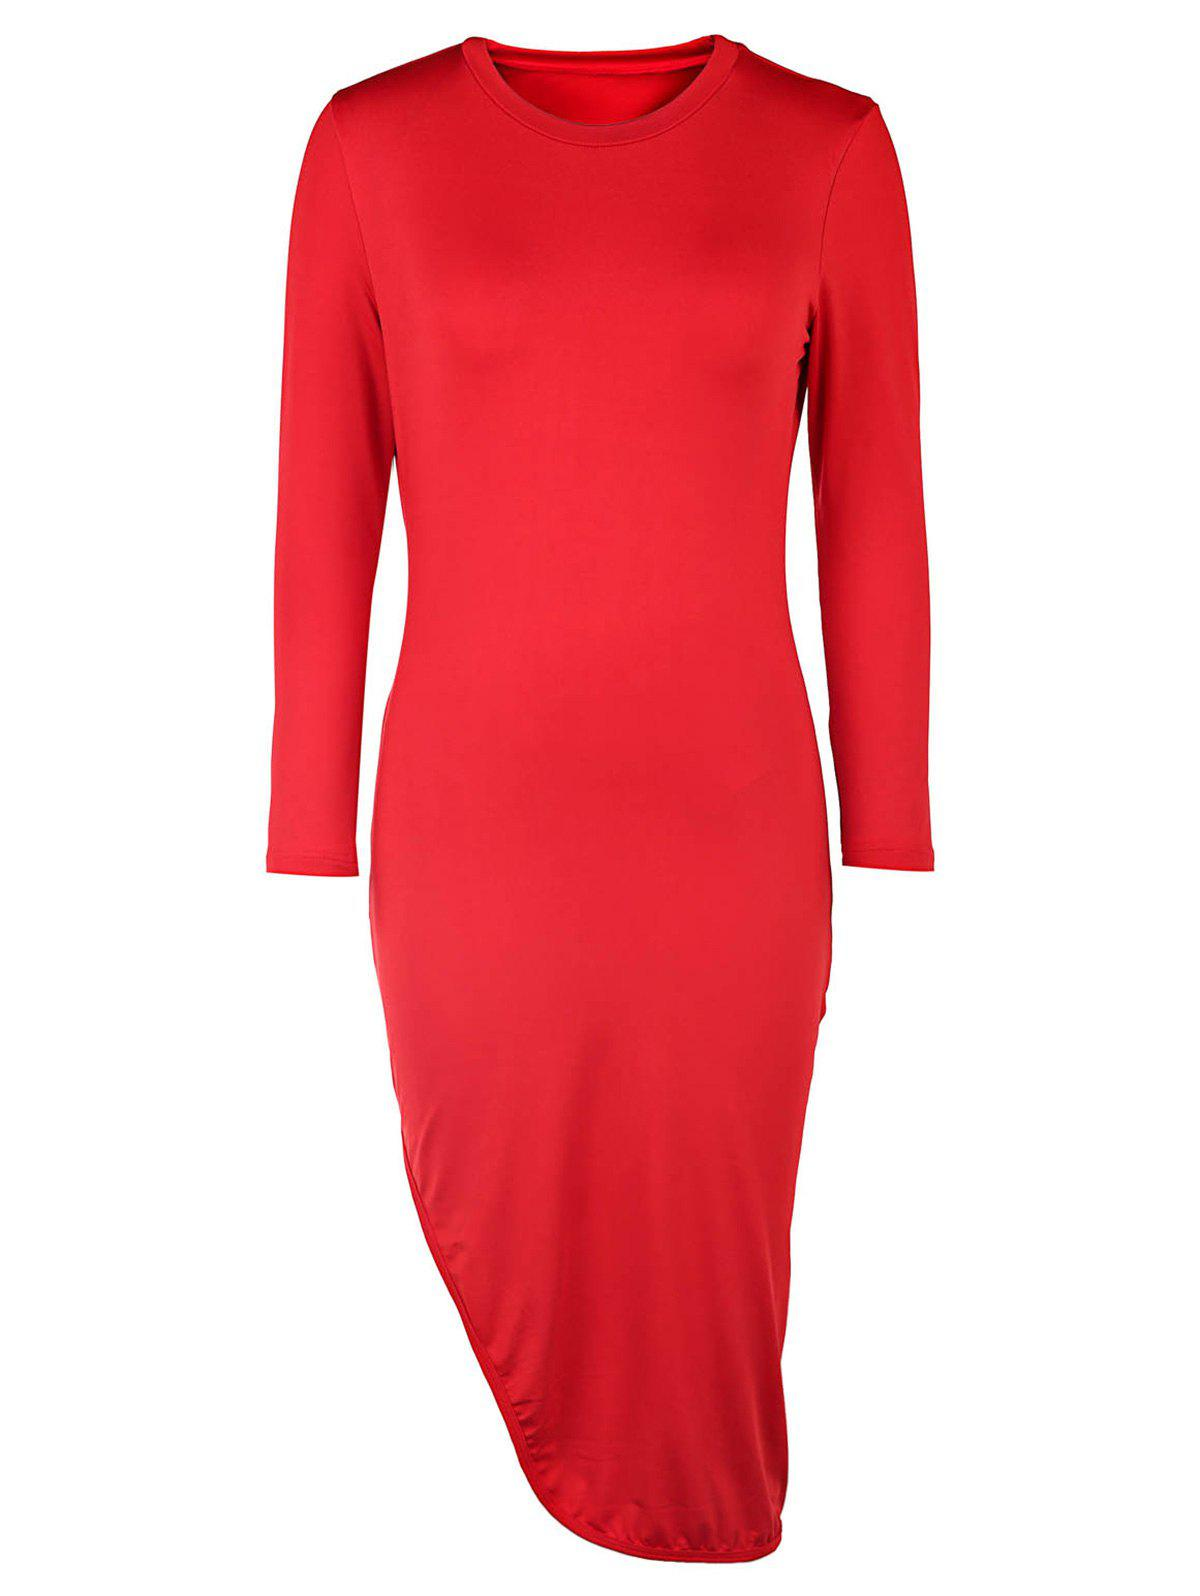 Sexy Round Neck 3/4 Sleeve High Slit Solid Color Women's Dress - RED L